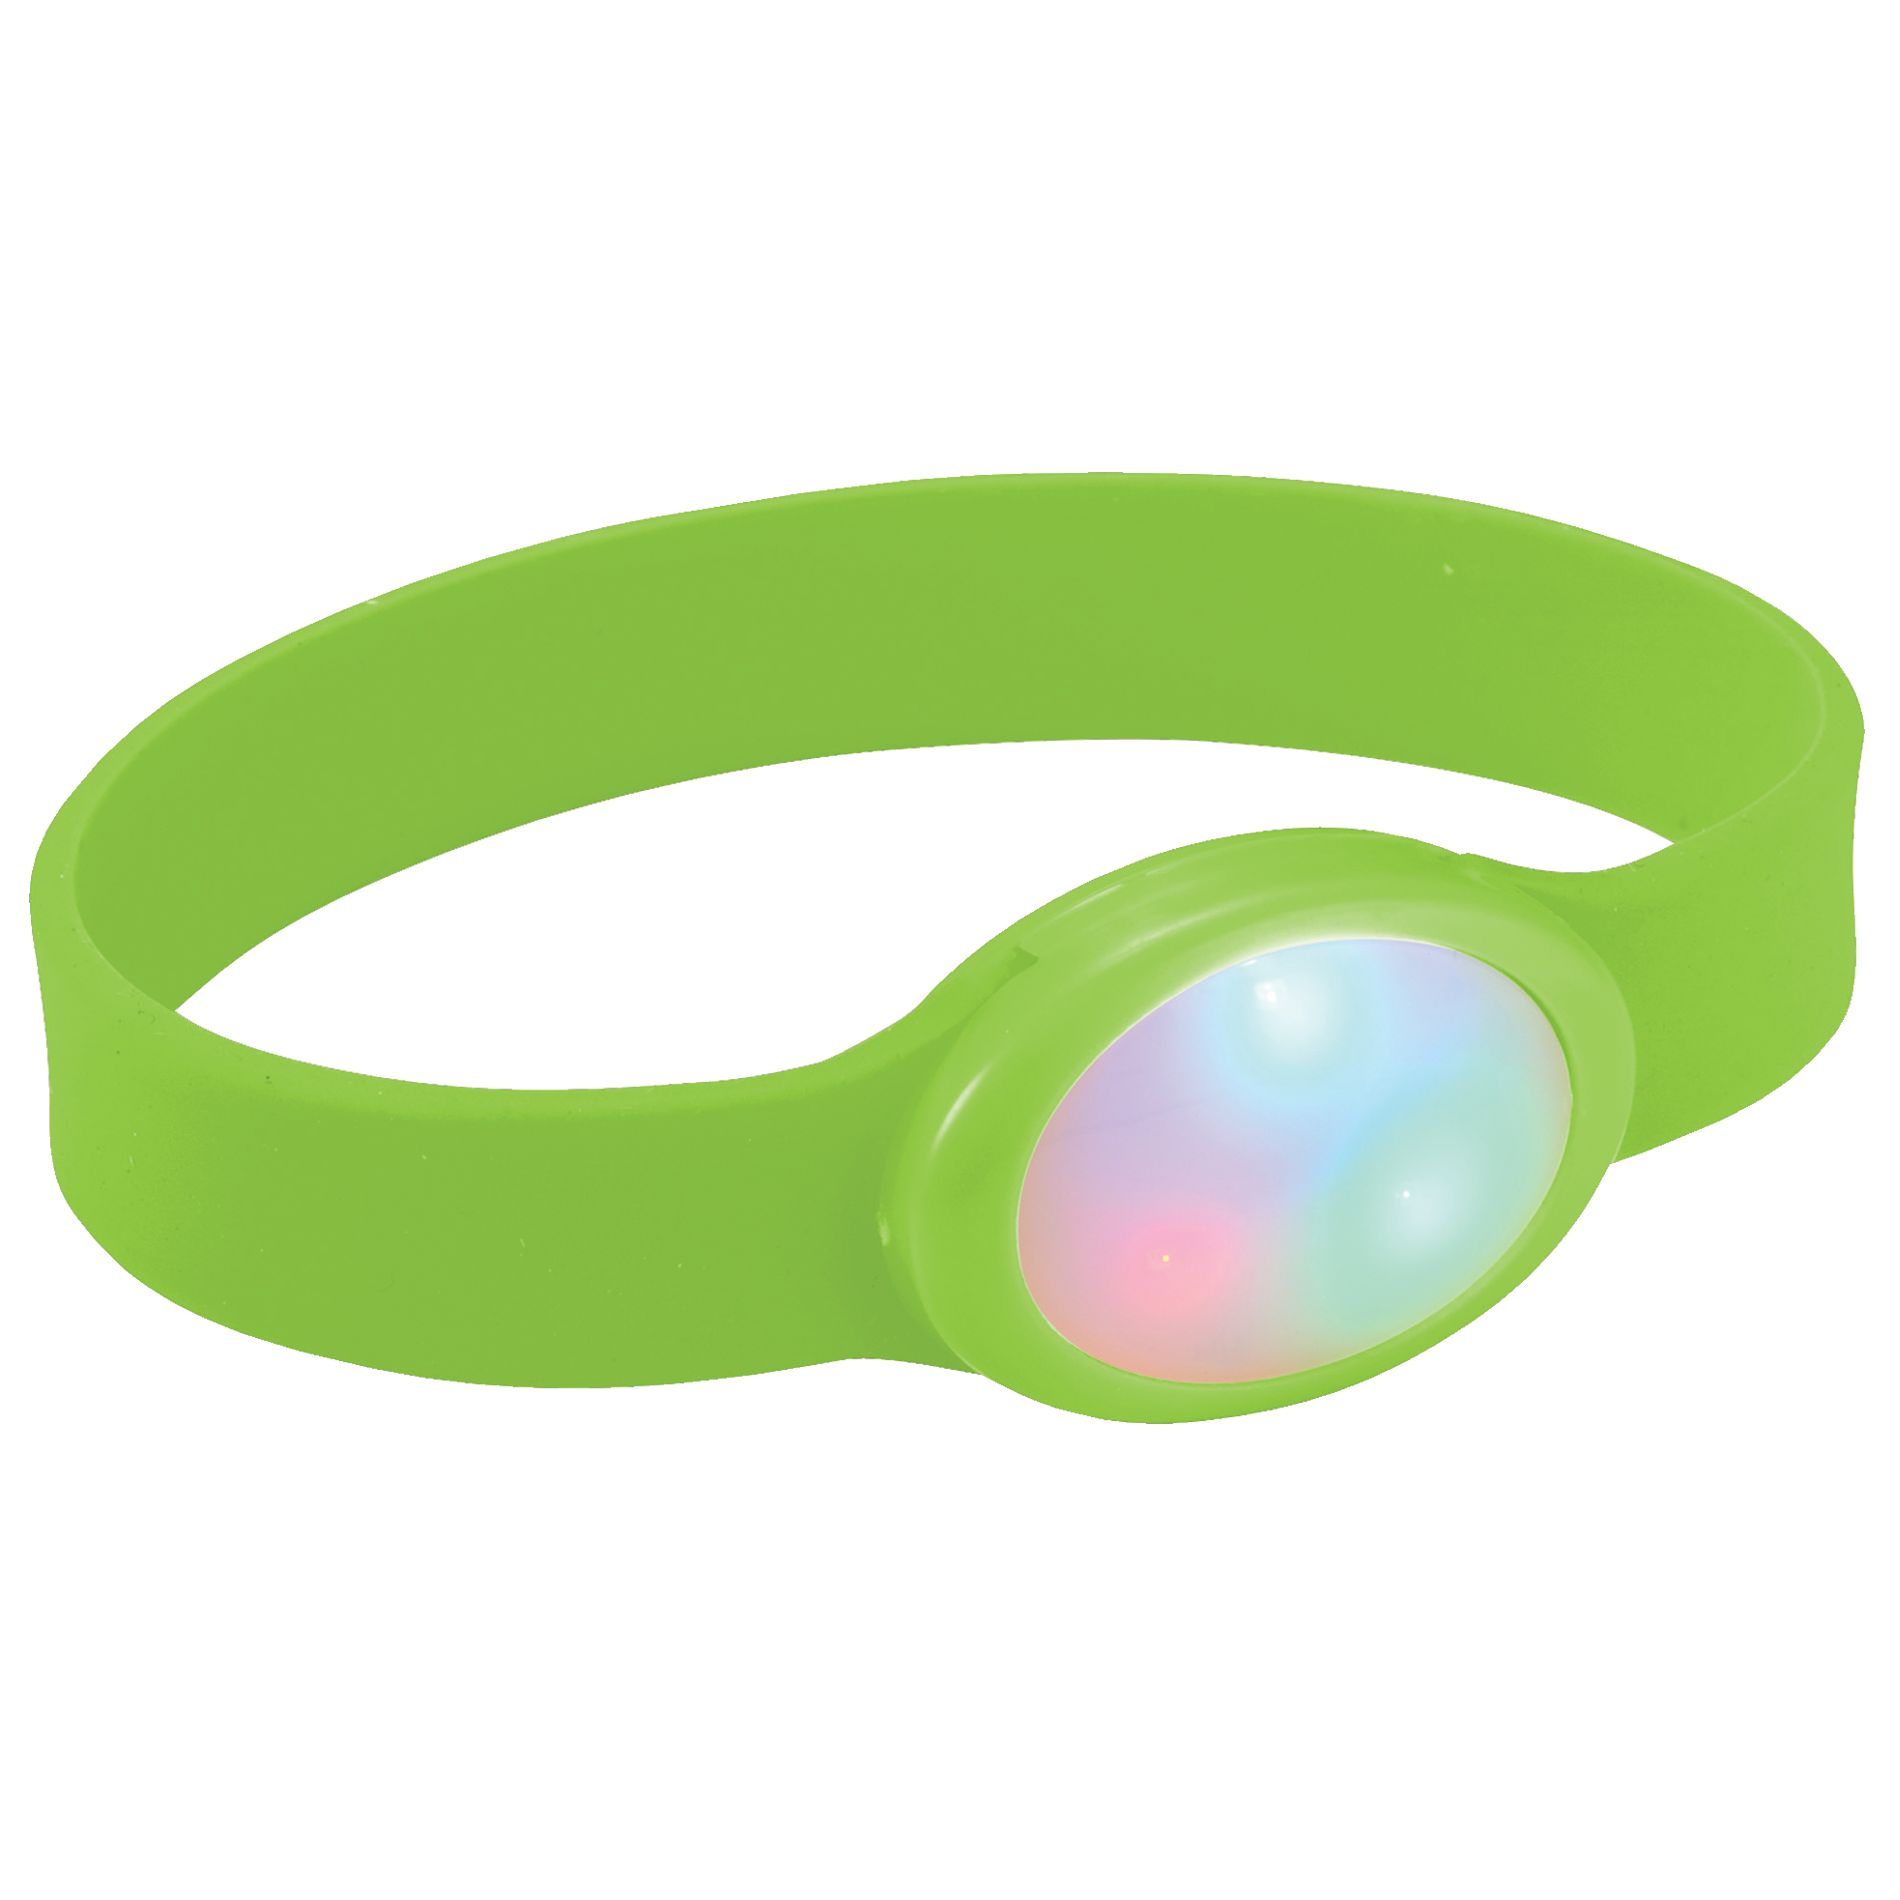 BRAZALETE MULTICOLOR DE LED FLASH   VE